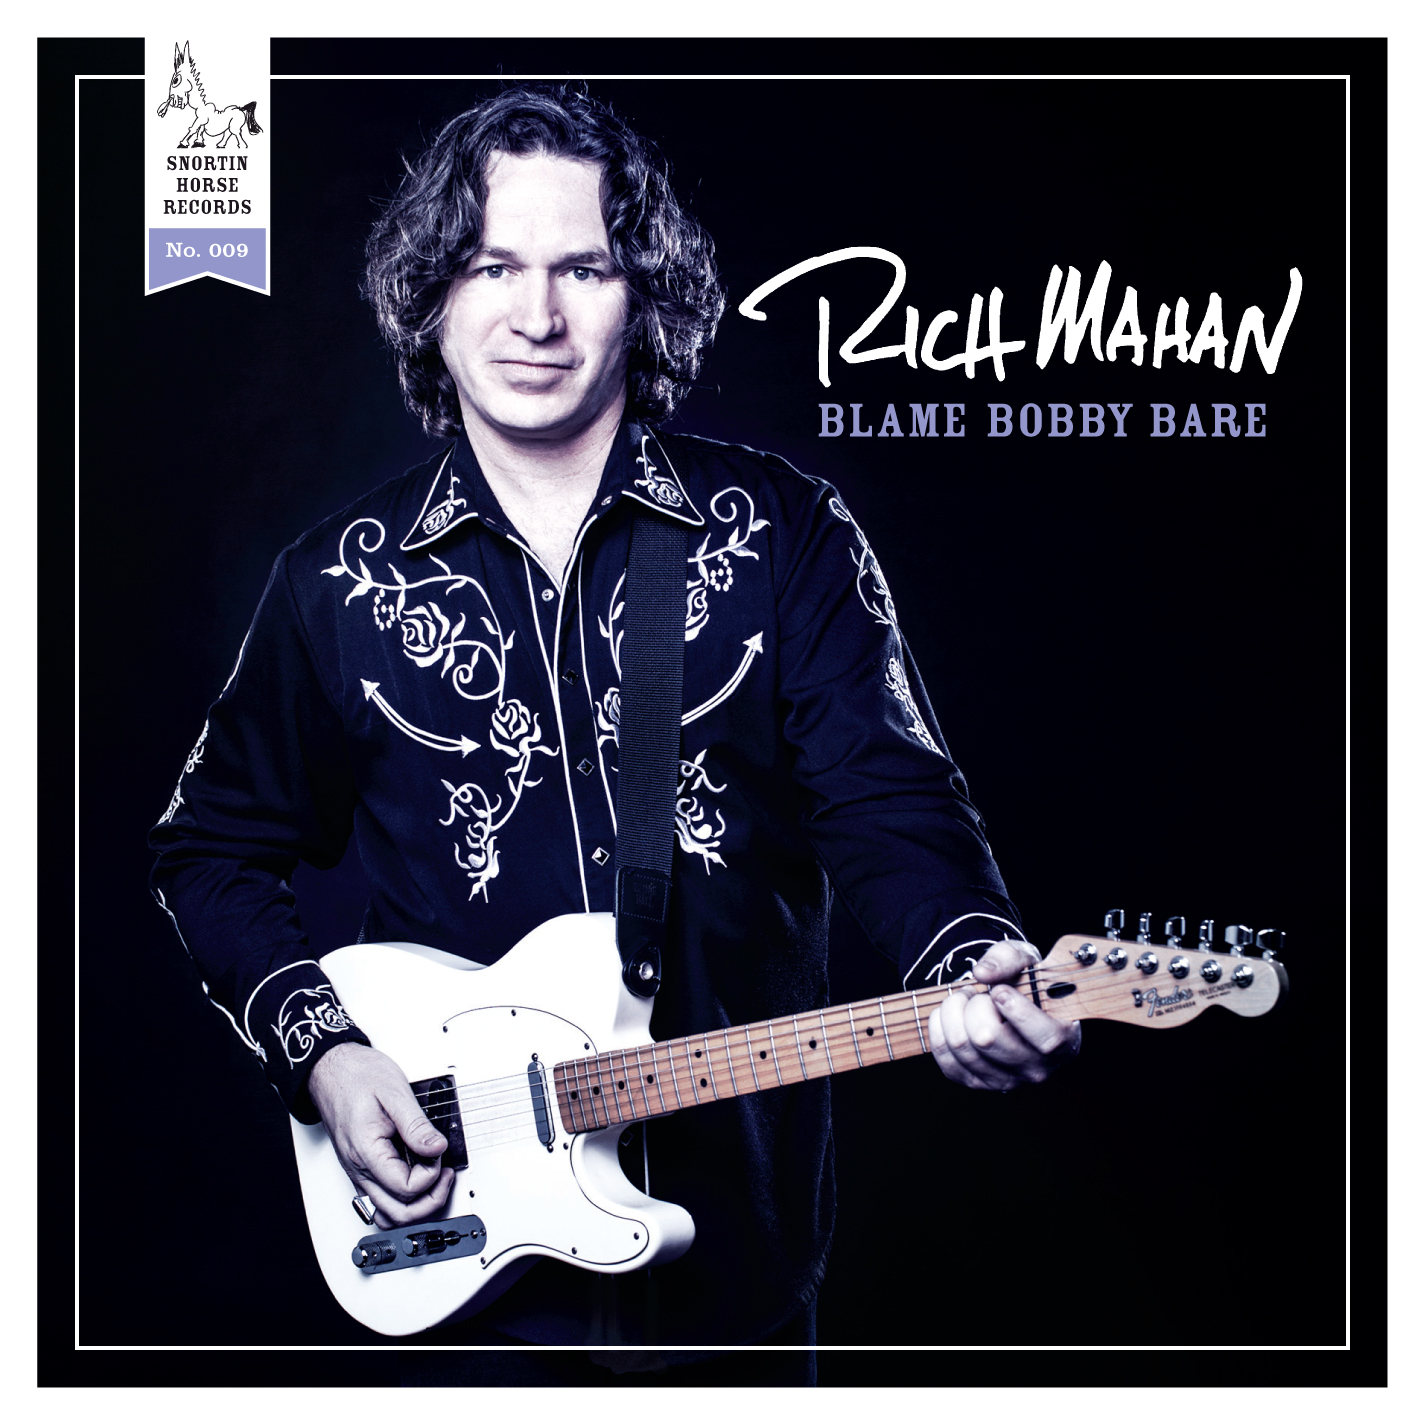 Rich Mahan Blame Bobby Bare Cover.jpeg